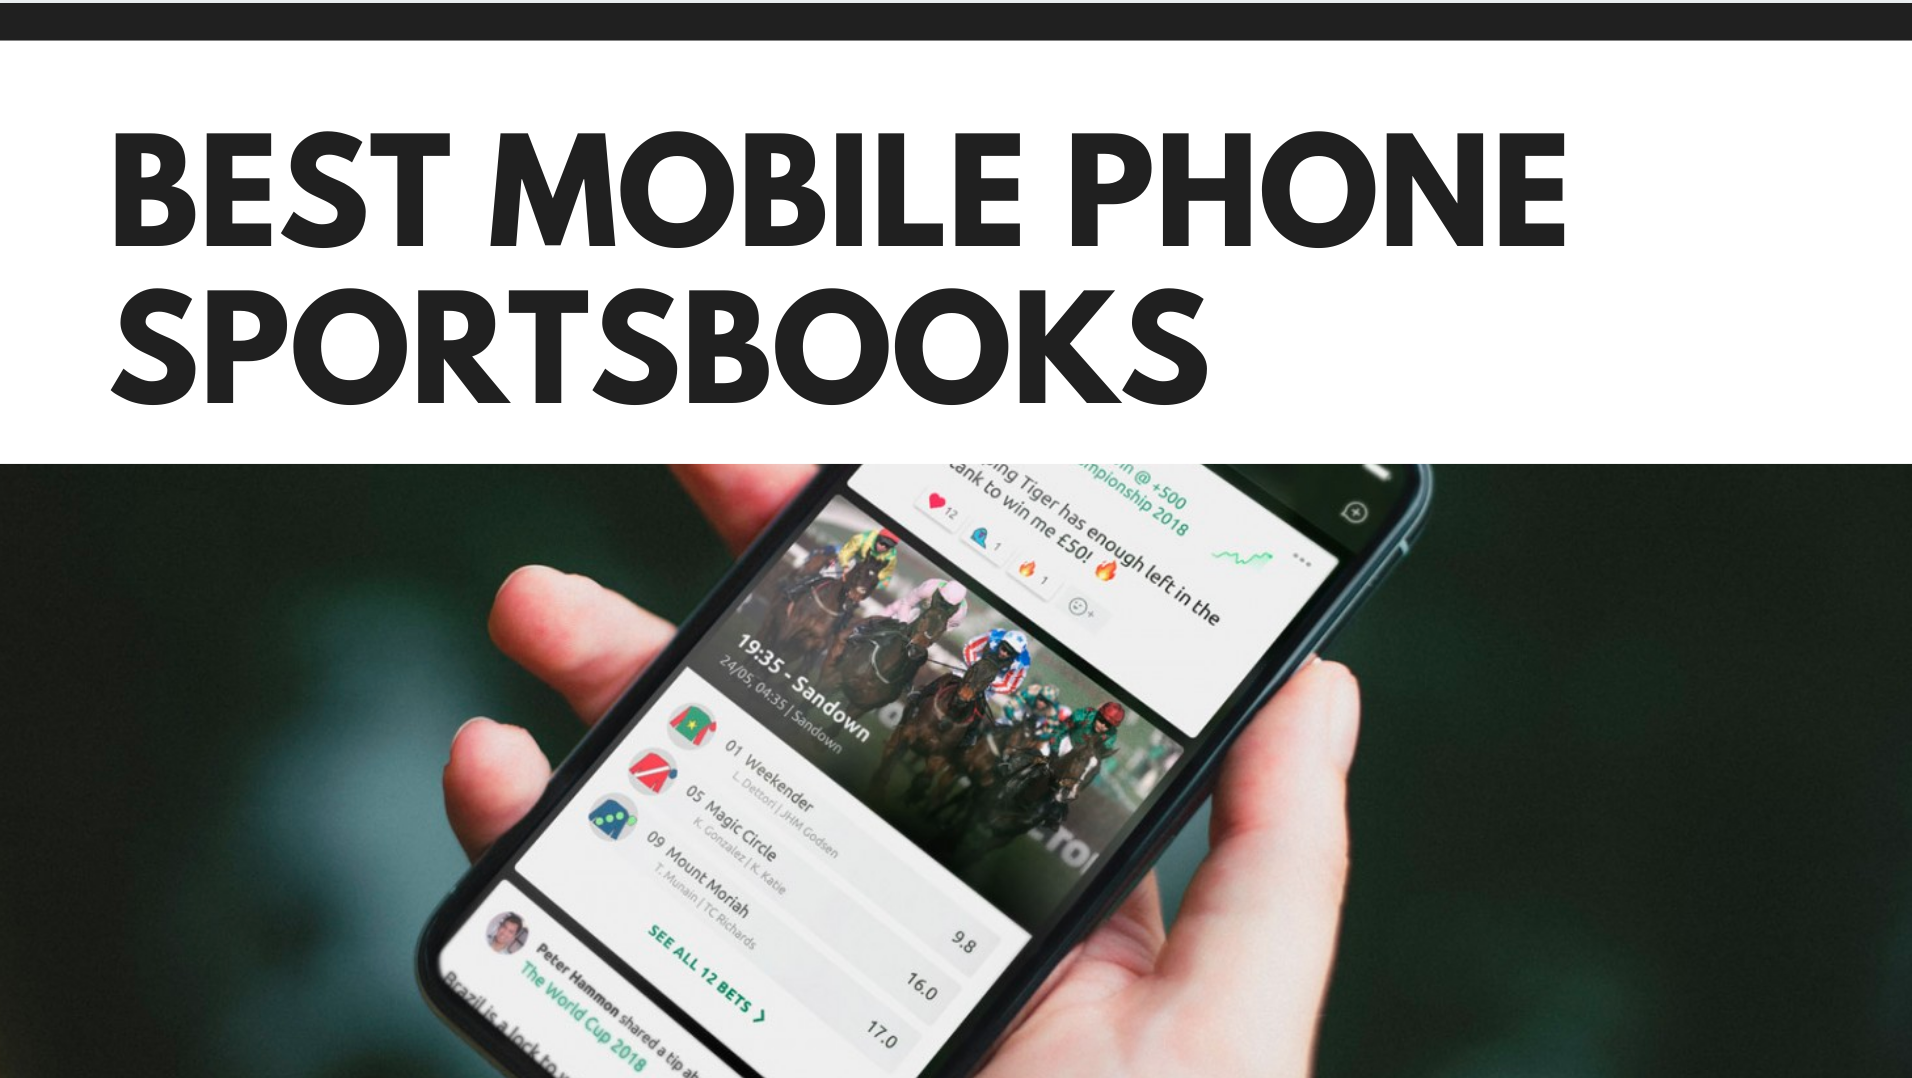 Best Mobile Phone Sportsbooks